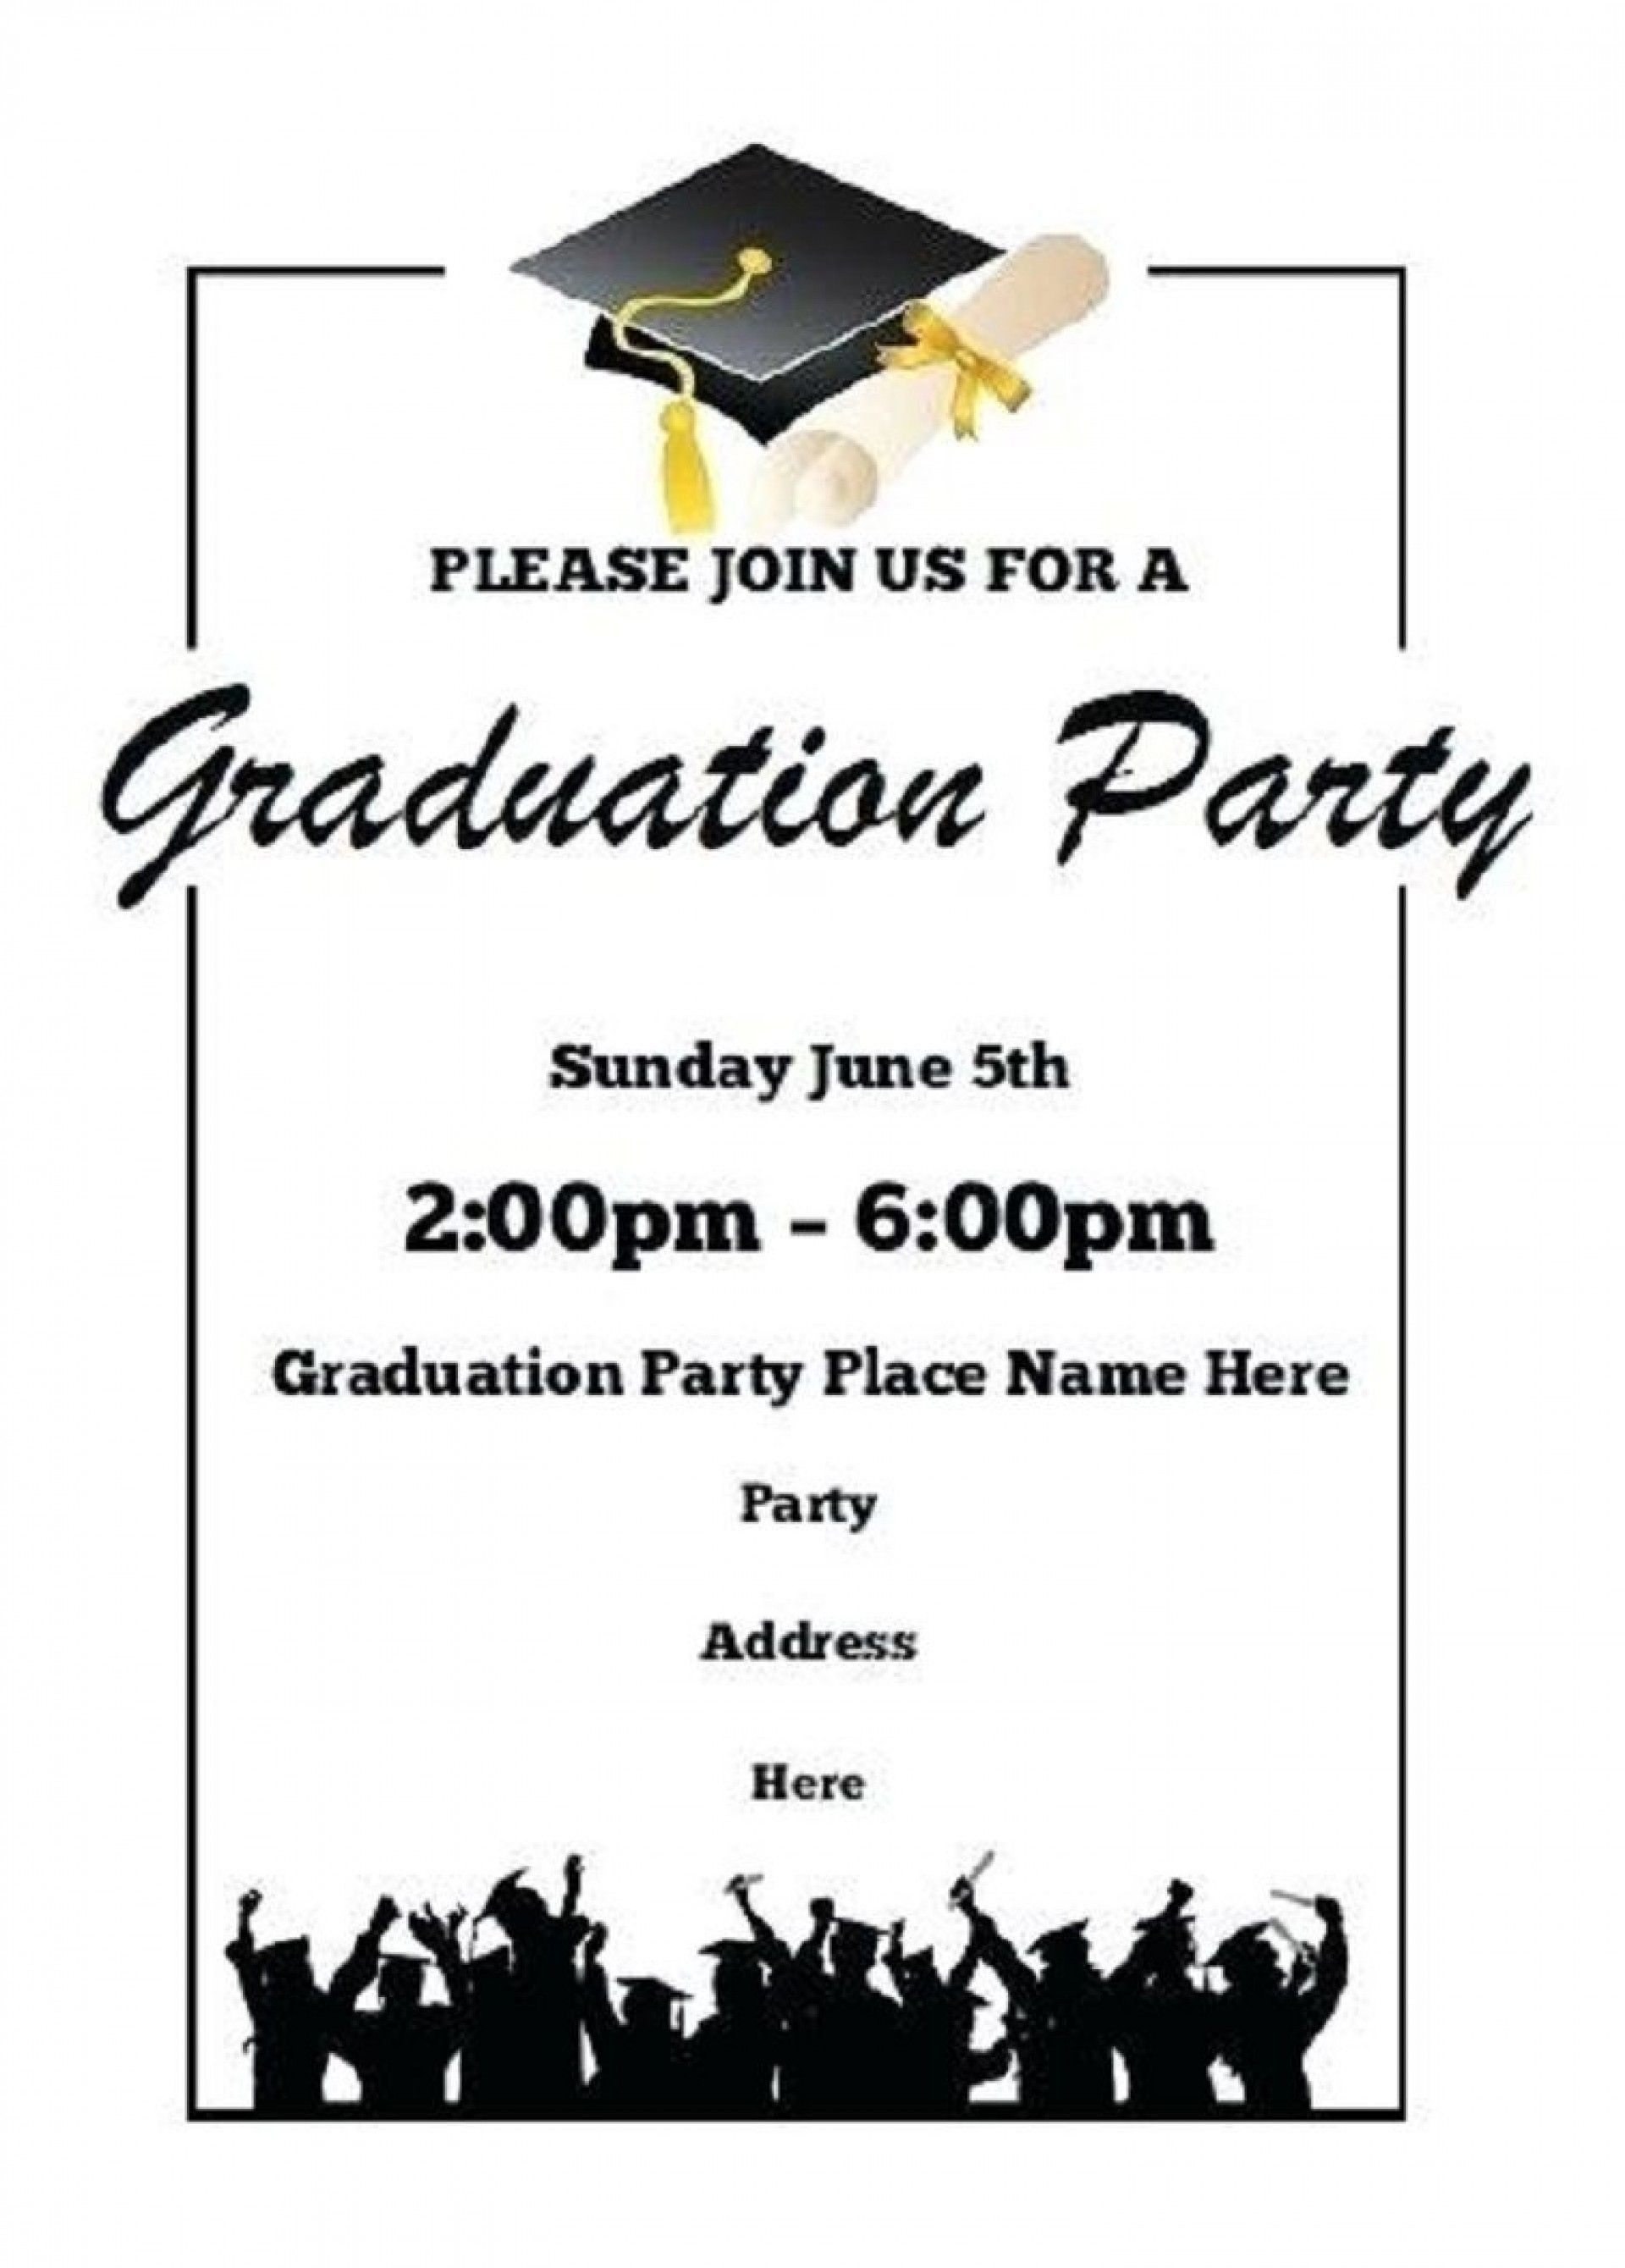 002 Singular Free Printable Graduation Invitation Template High Resolution  Preschool Card 2019Full